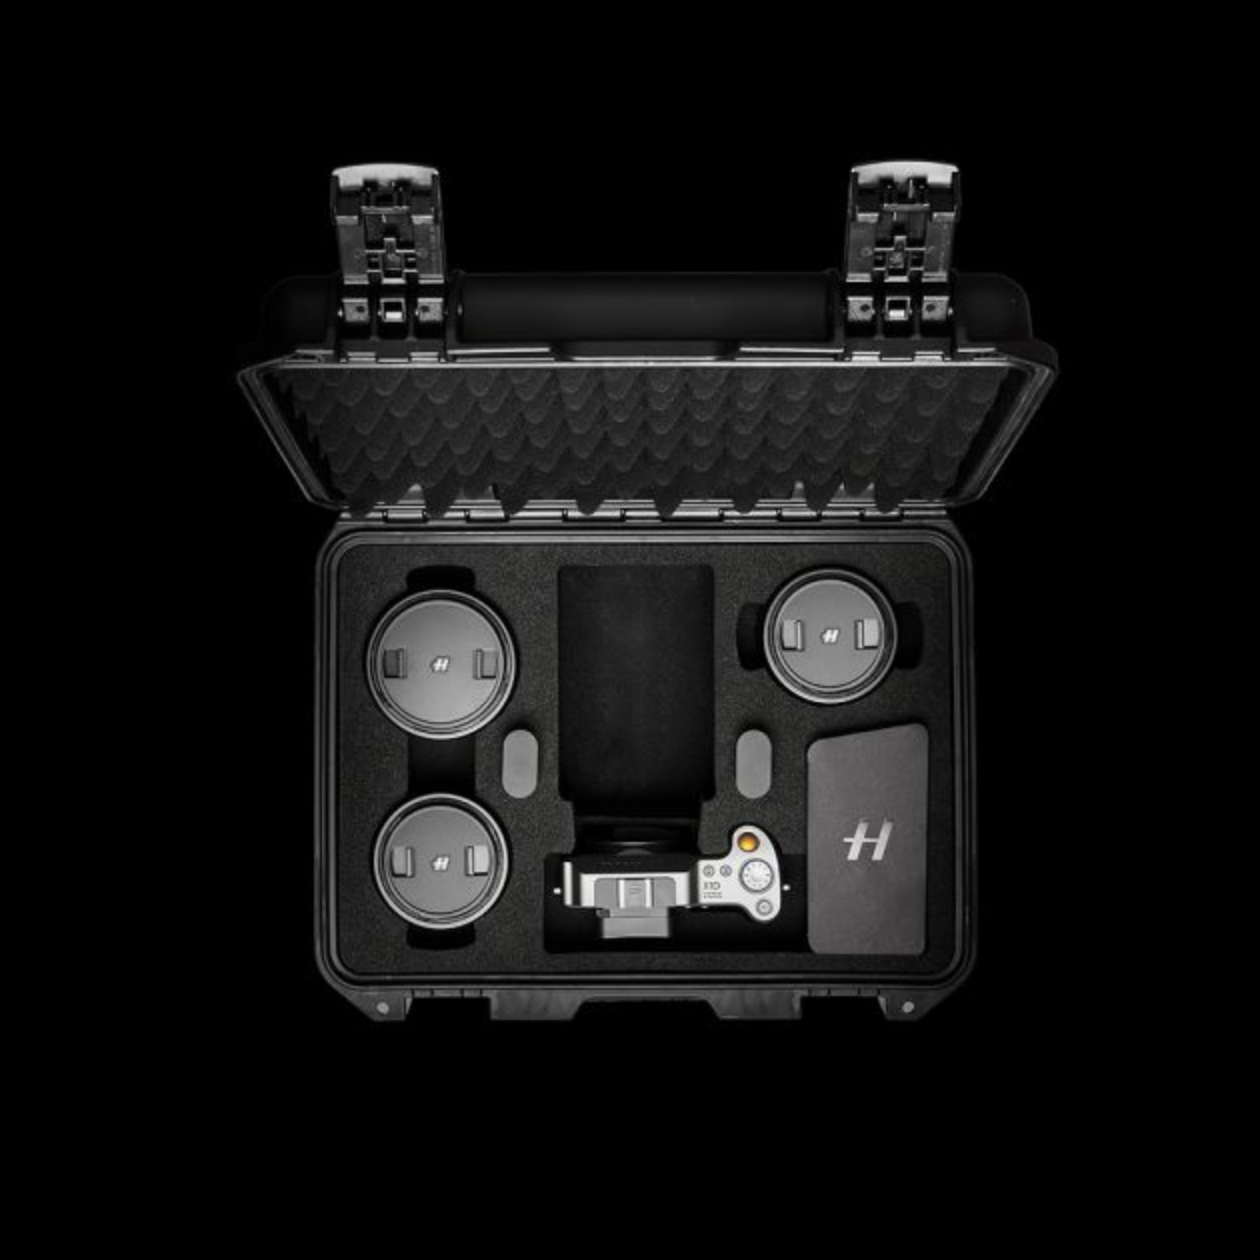 Hasselblad's new X1D 'Field Kit' bundle offers great value if you feel like treating yourself